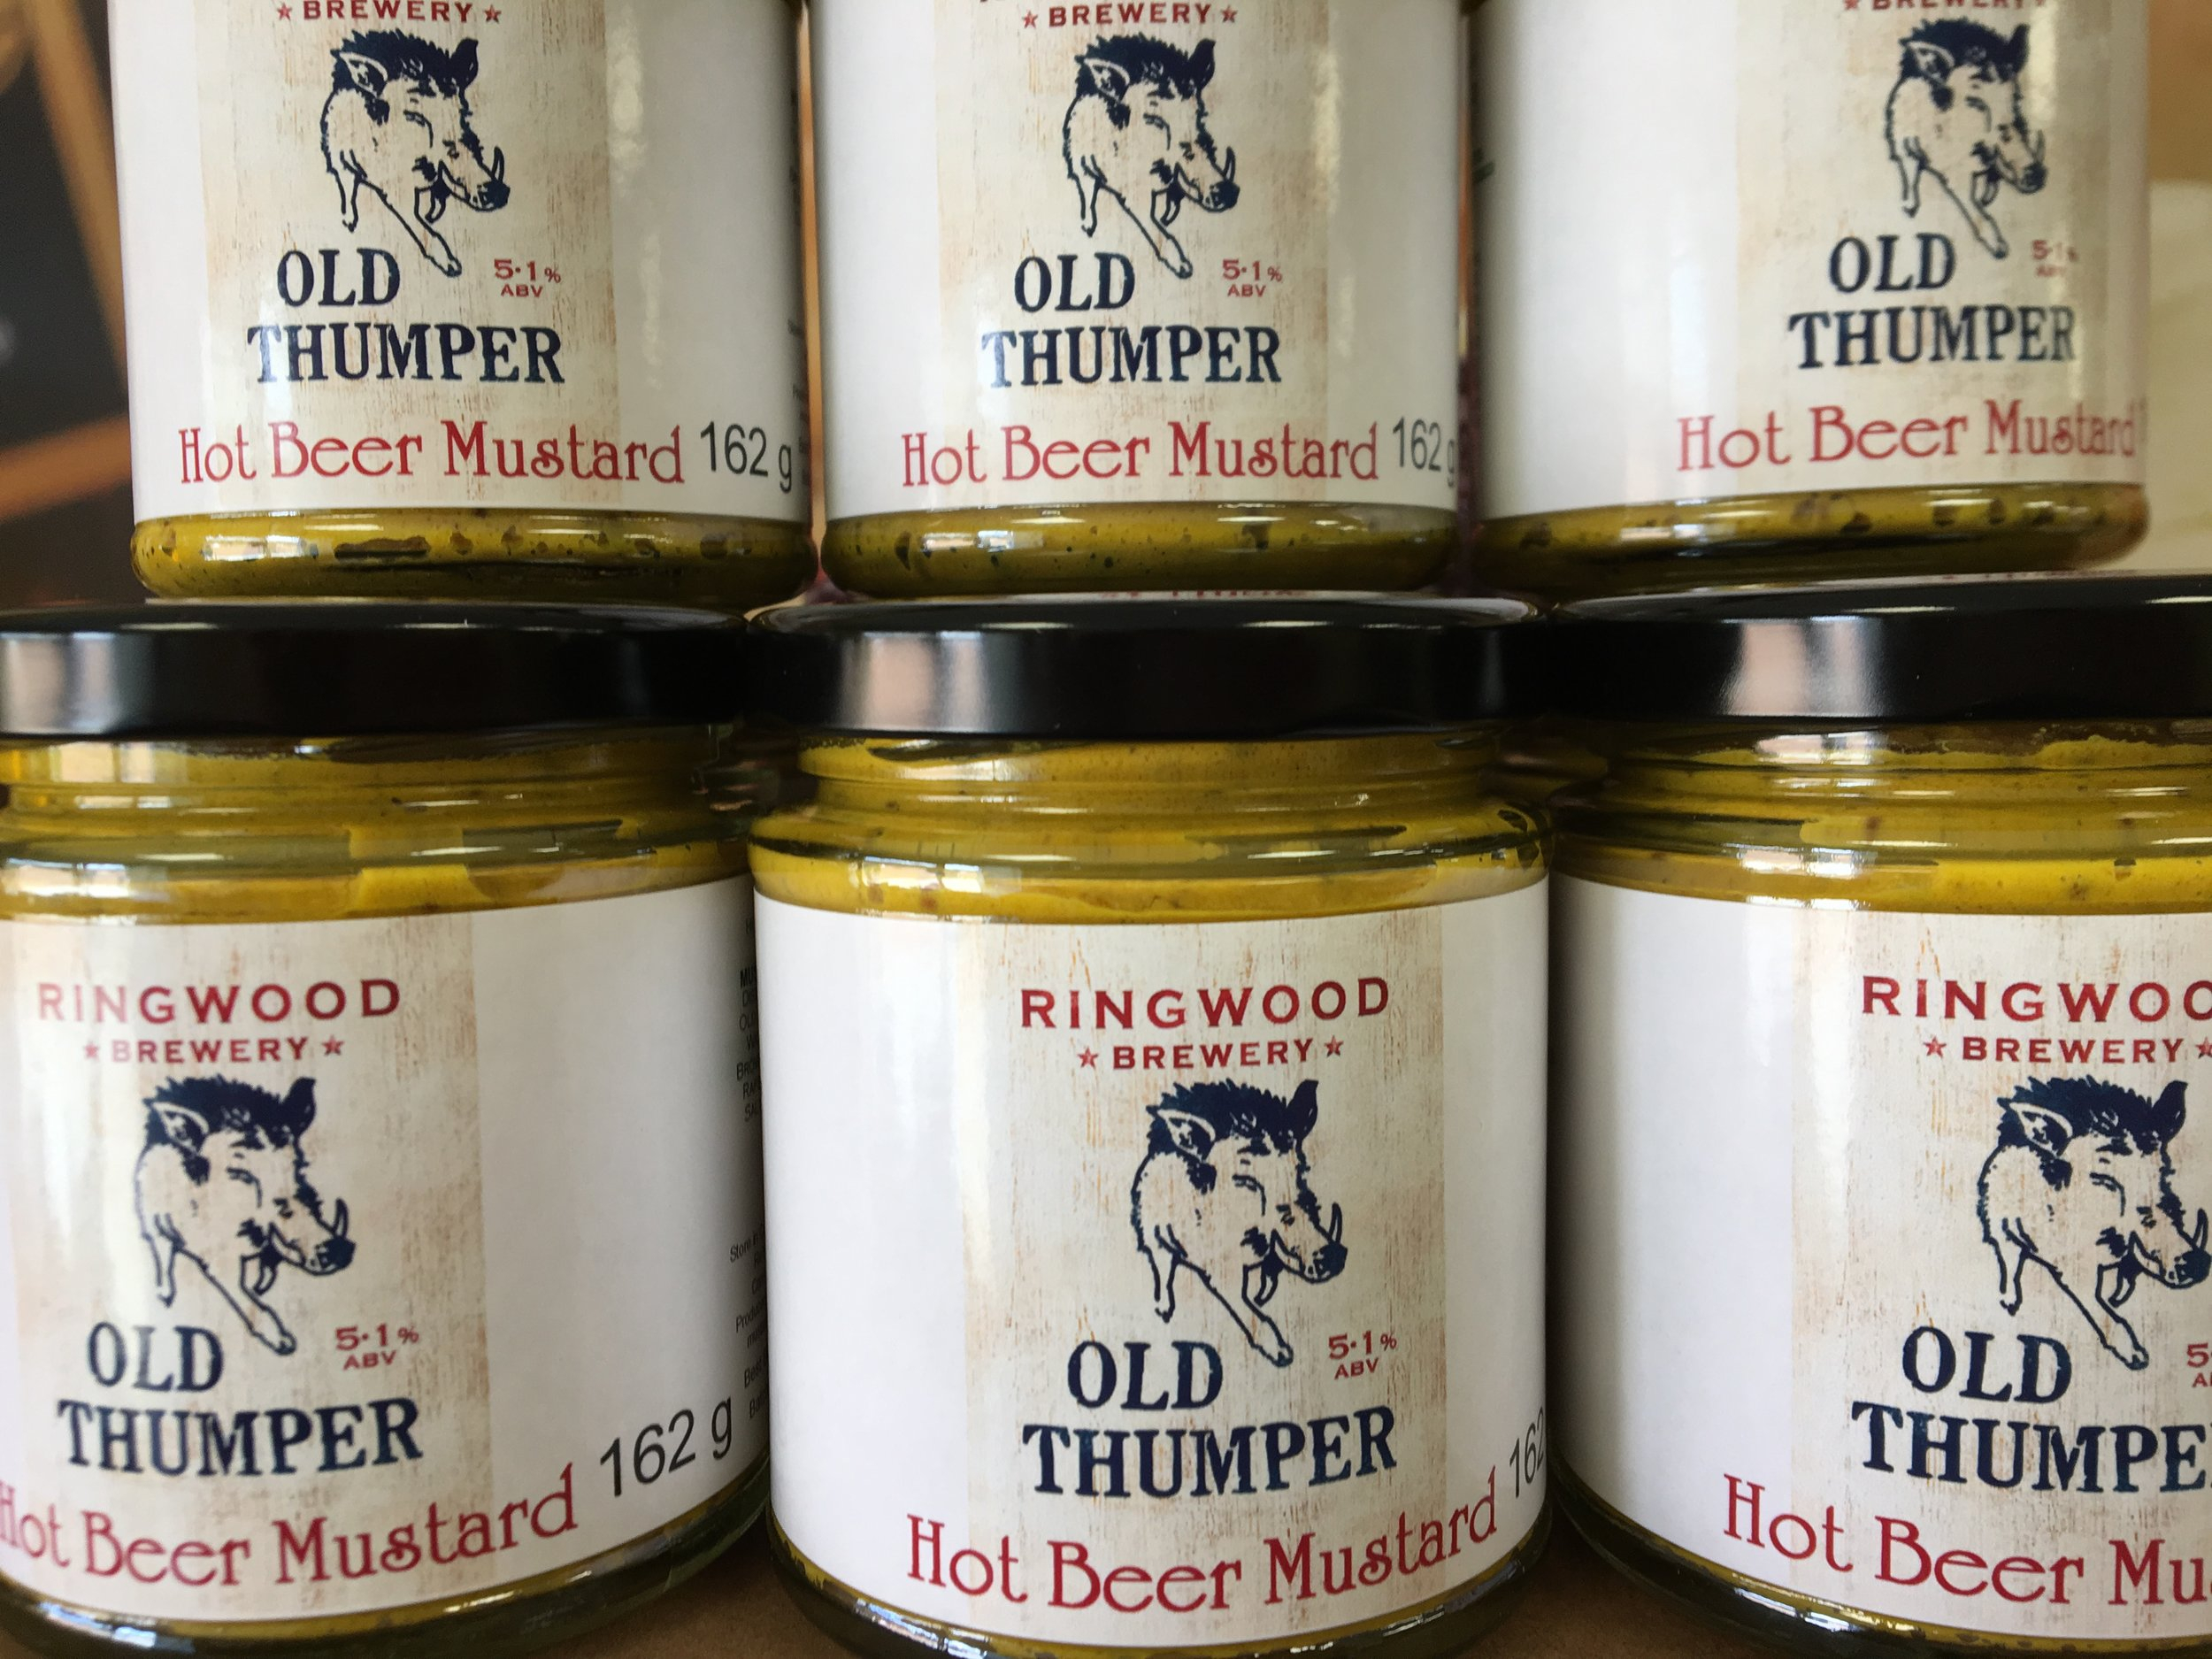 Add a jar of Old Thumper Hot Beer Mustard to your  hamper to spice things up a bit!  Contains 26% of Old Thumper ale